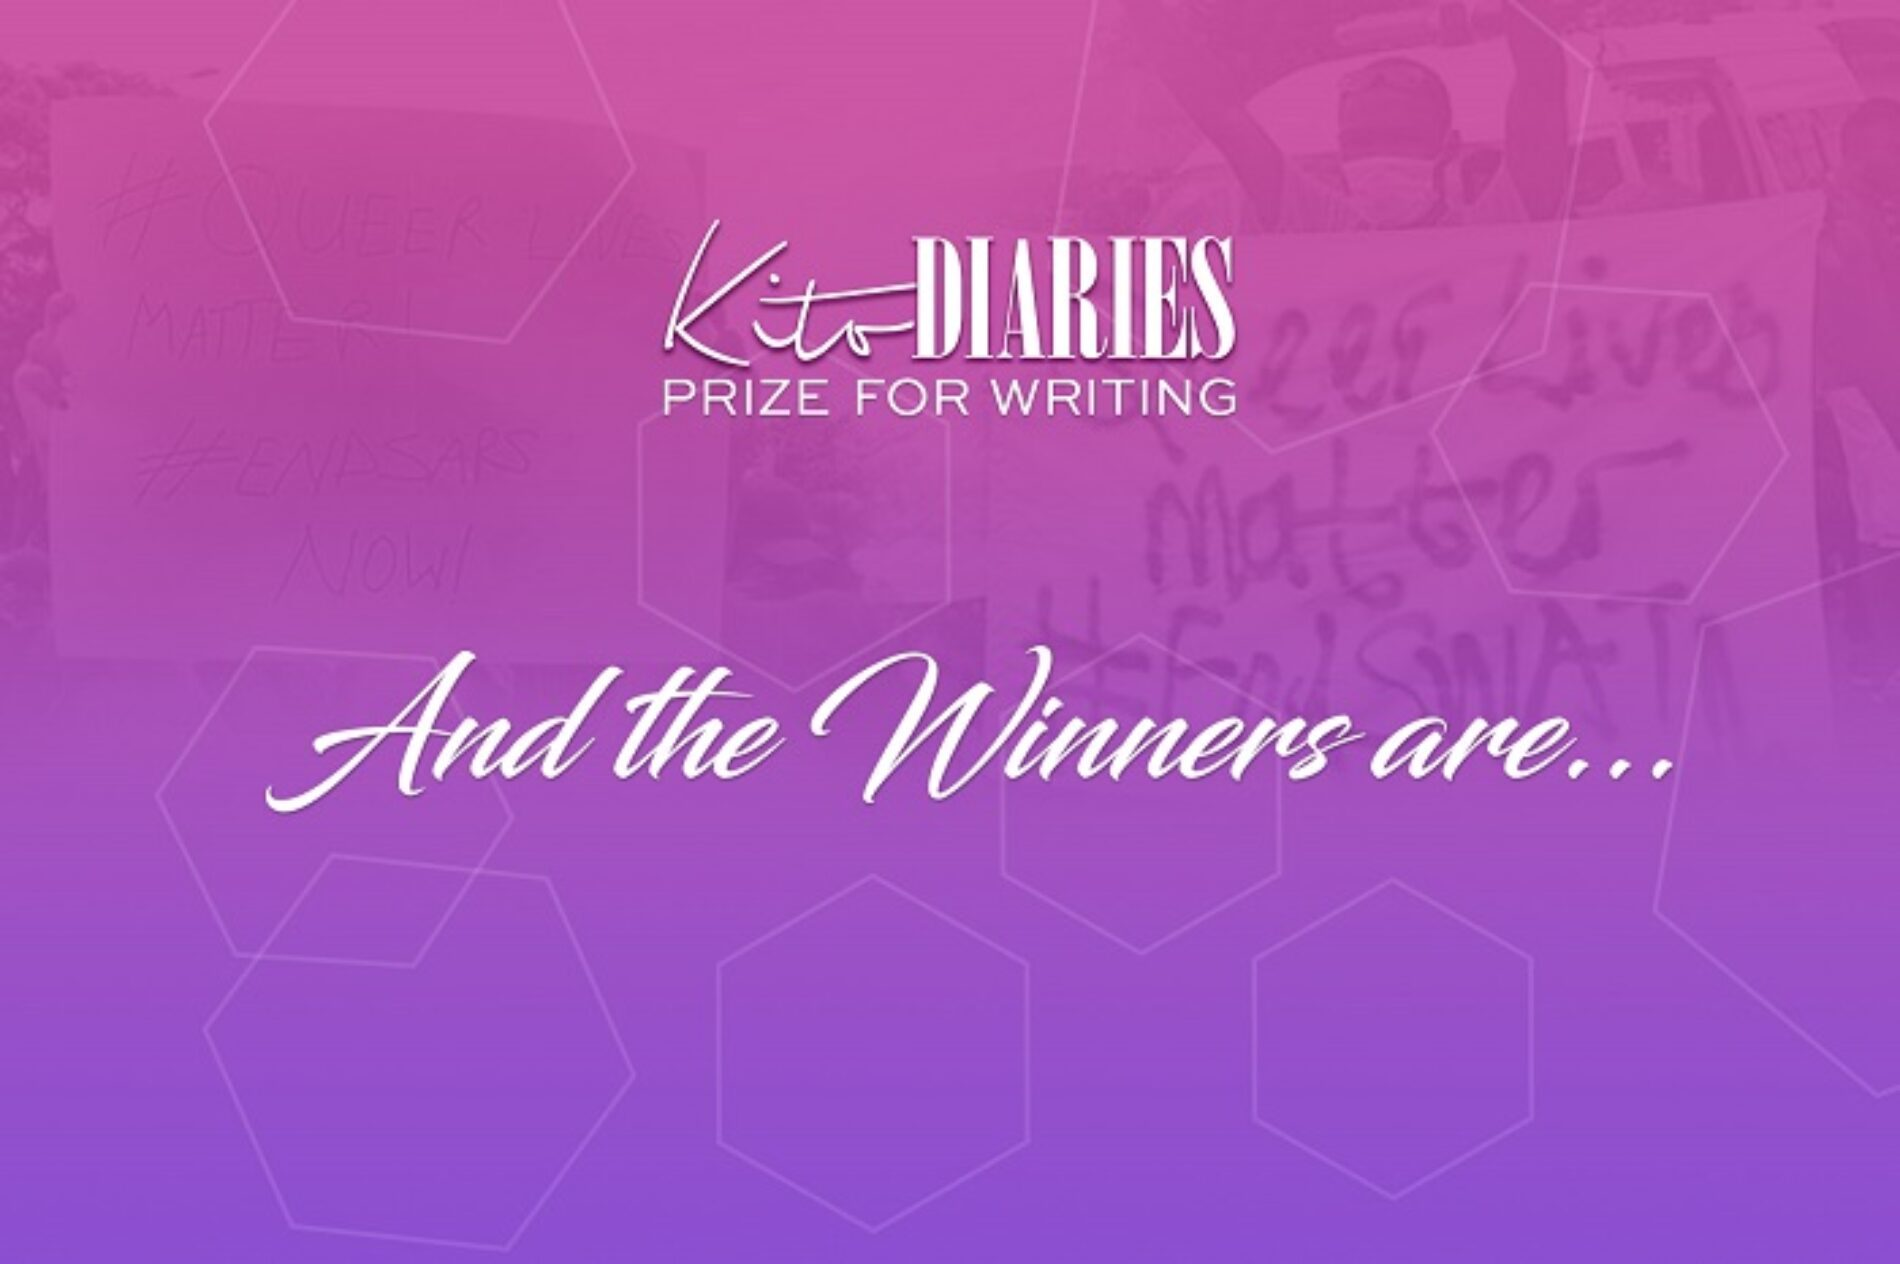 KITO DIARIES PRIZE FOR WRITING: AND THE WINNERS ARE…